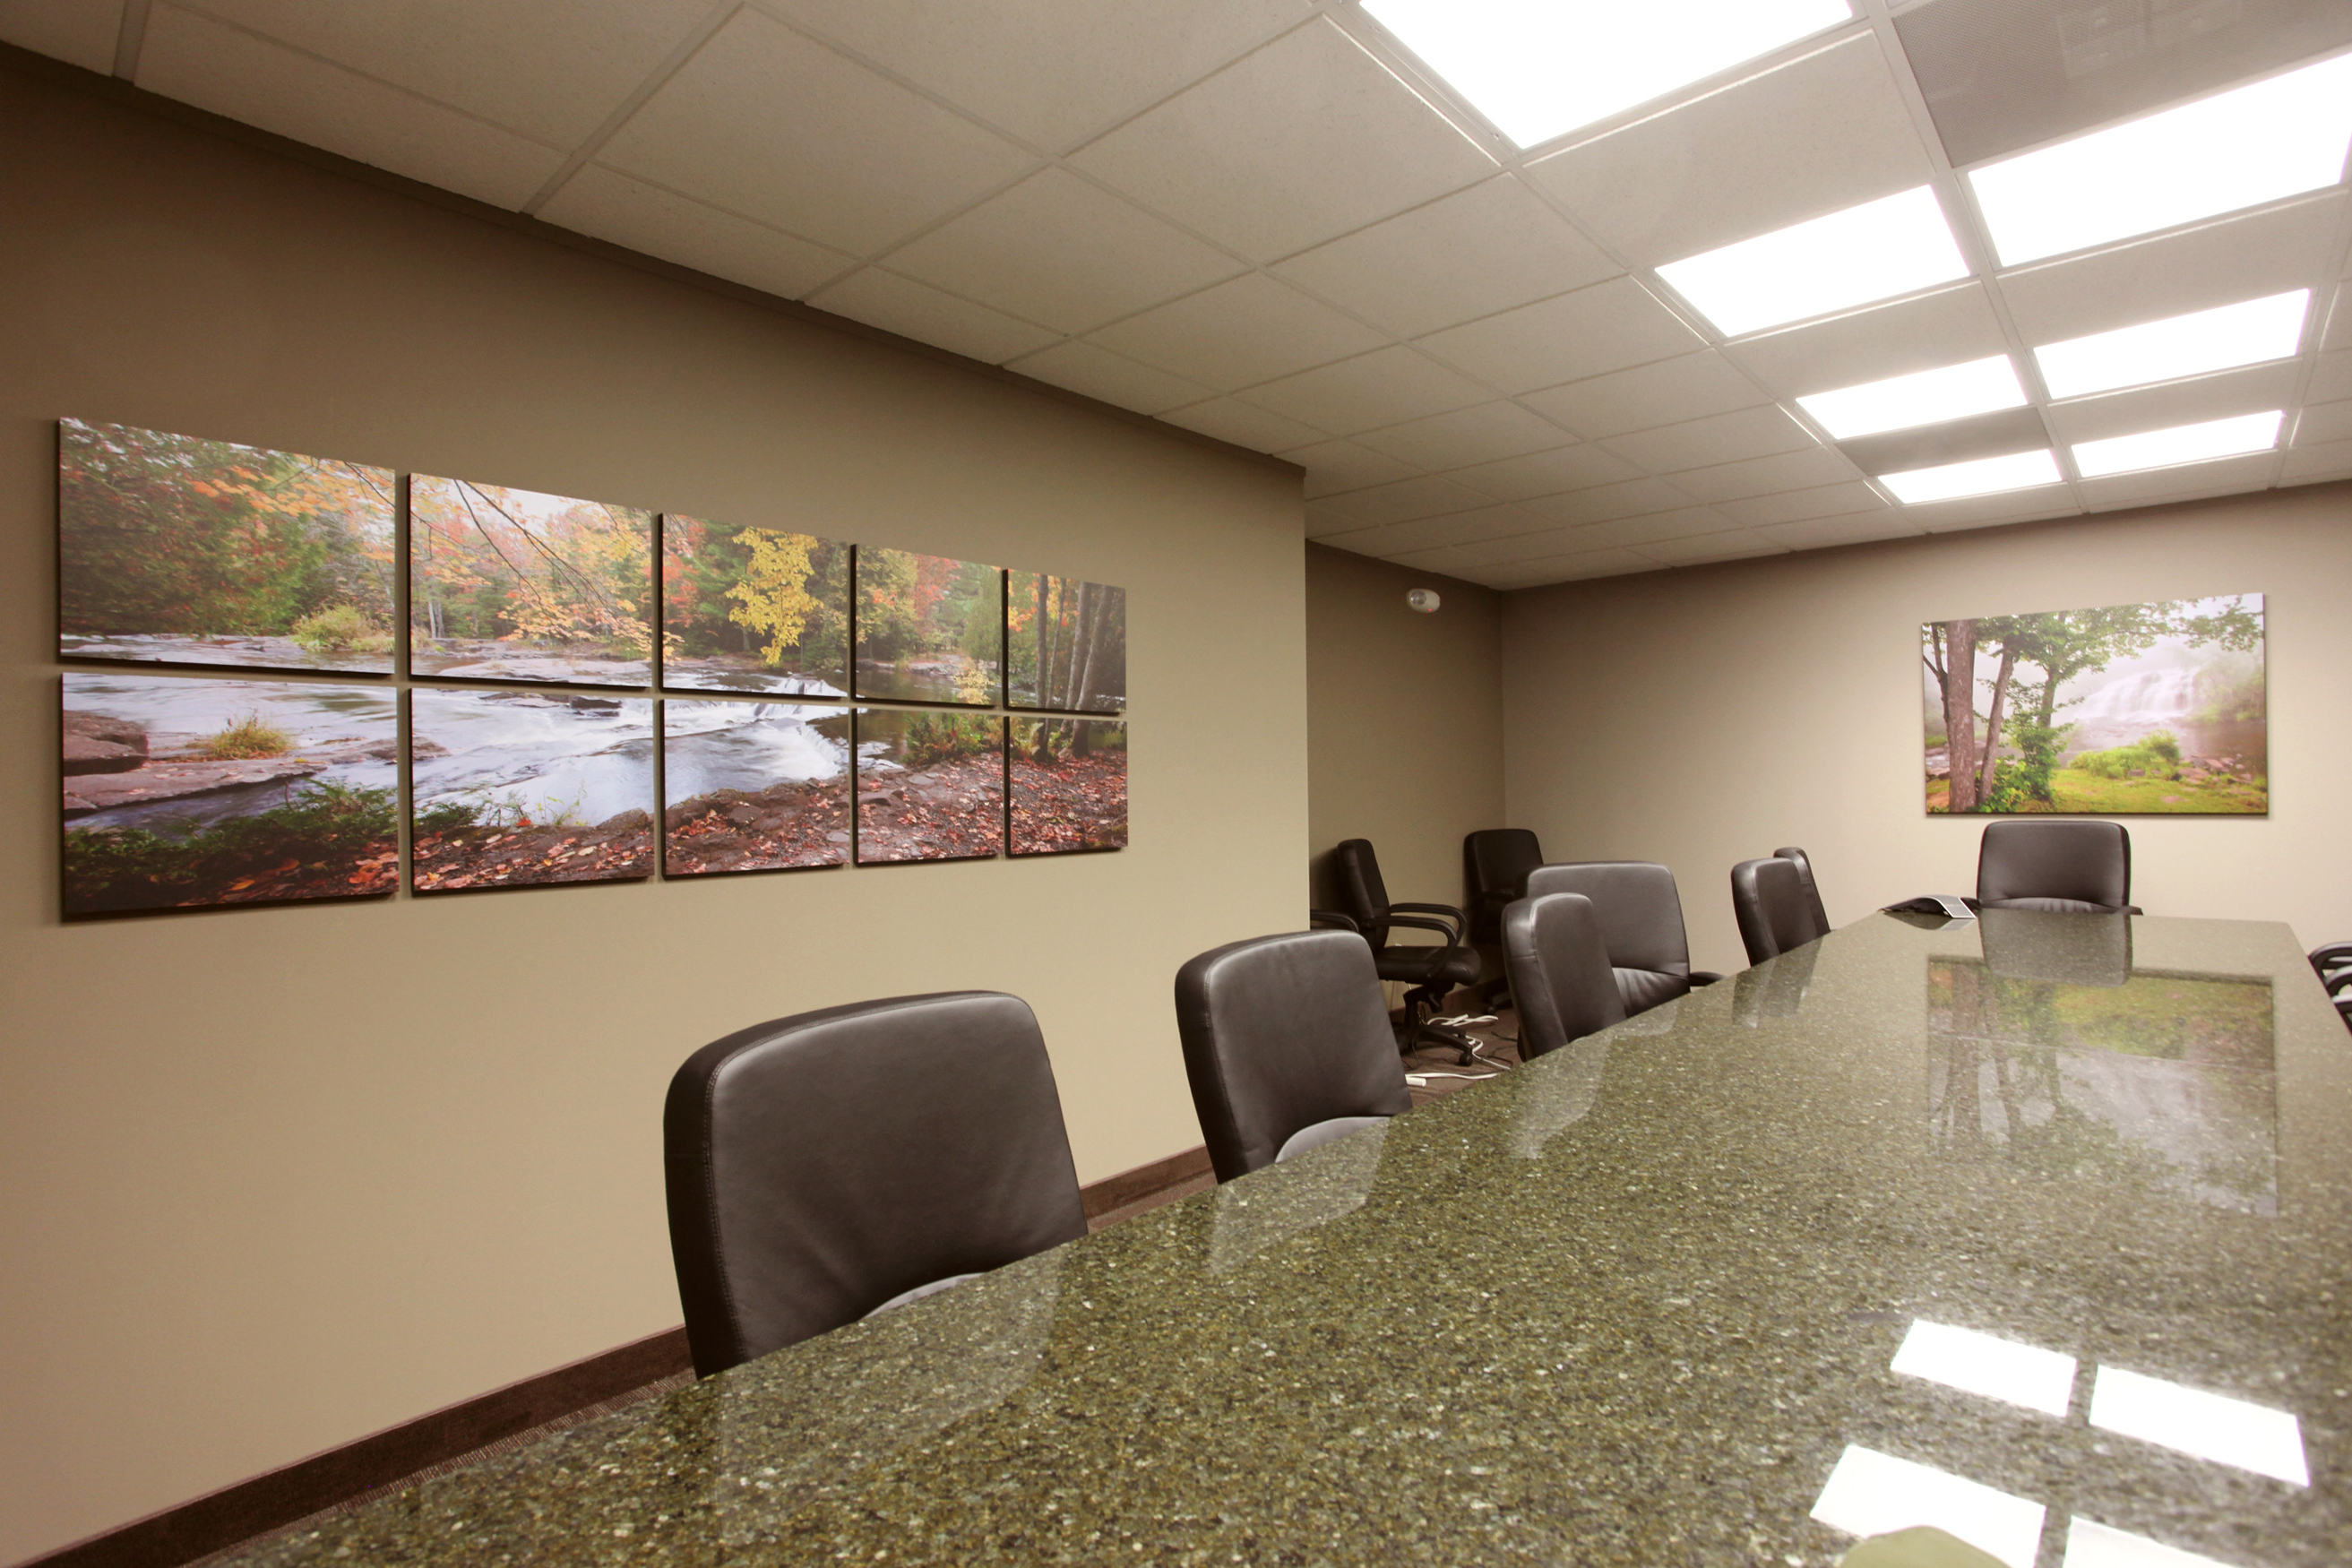 Installations fine art photography for Archispace designs architects interior consultants